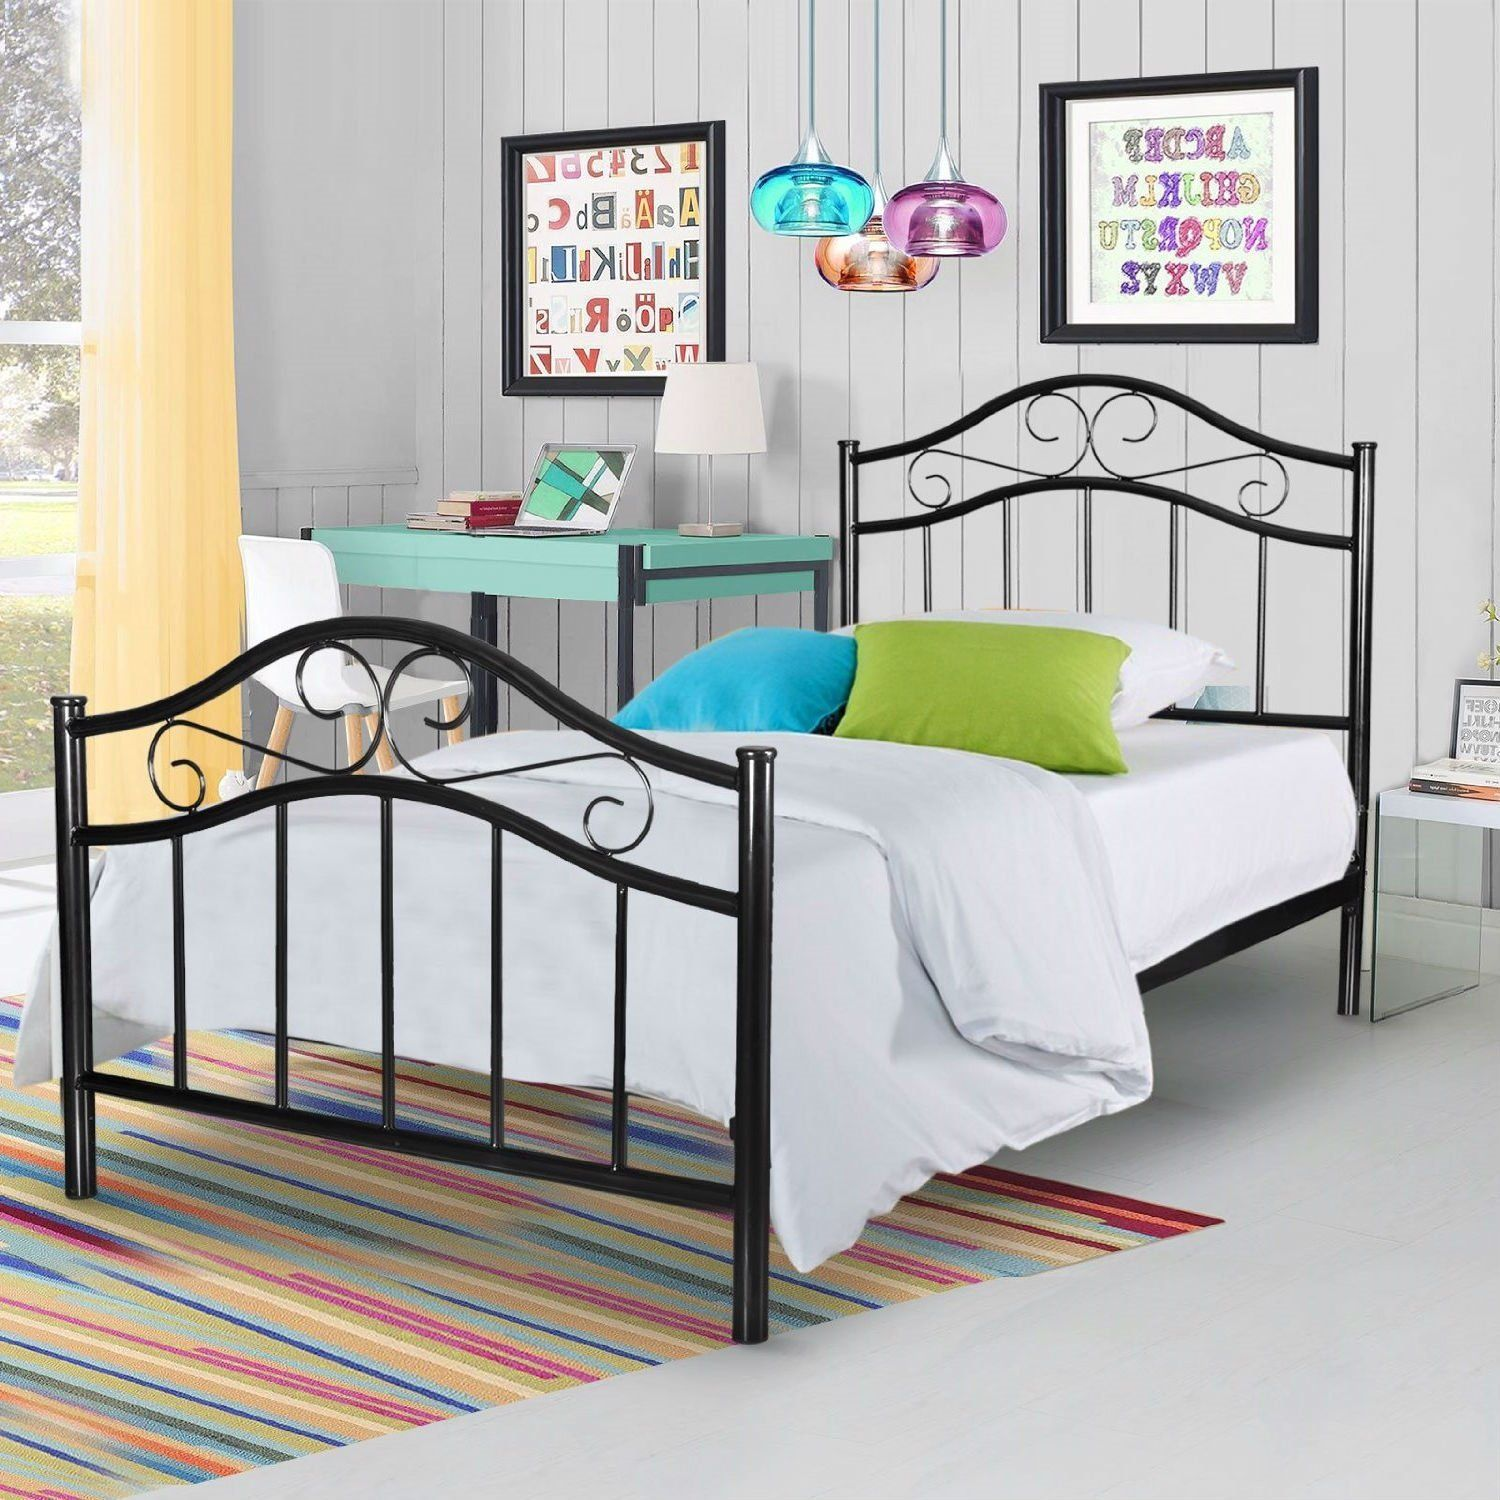 Twin size Simple Black Metal Platform Bed Frame with